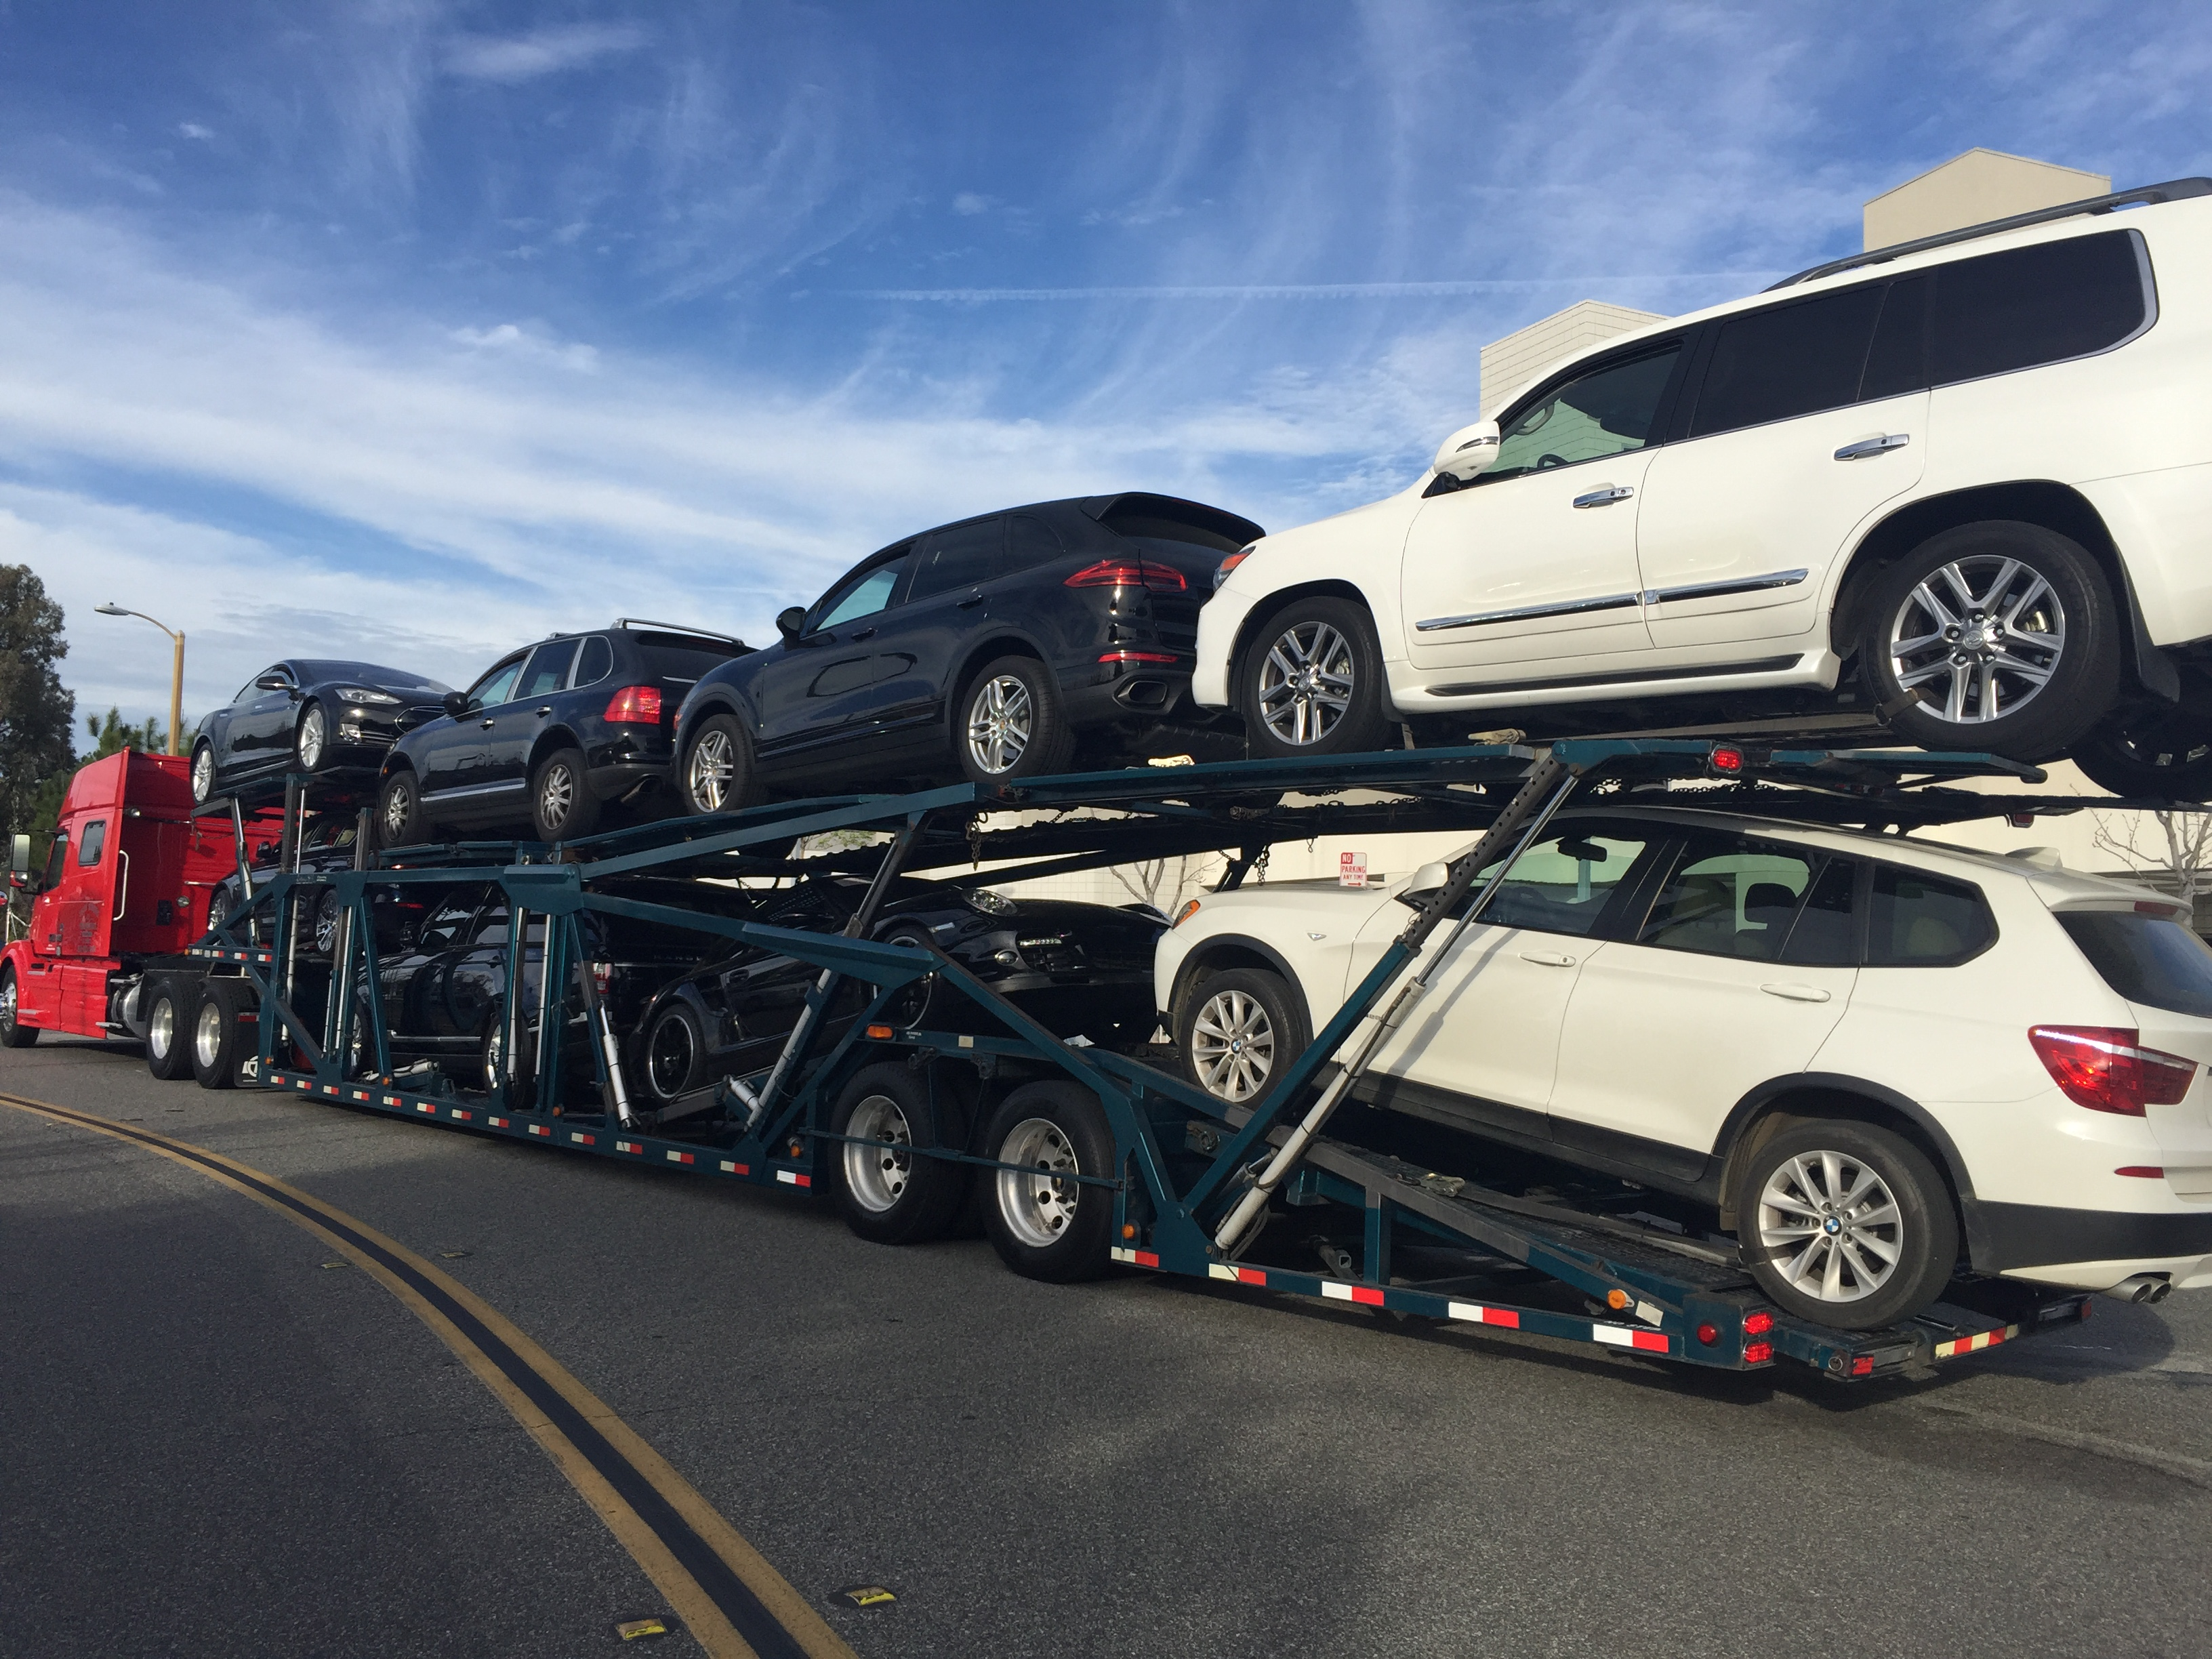 Car Transport Companies >> Auto Shipping Full Insurance Coverage Phoenix Car Transport